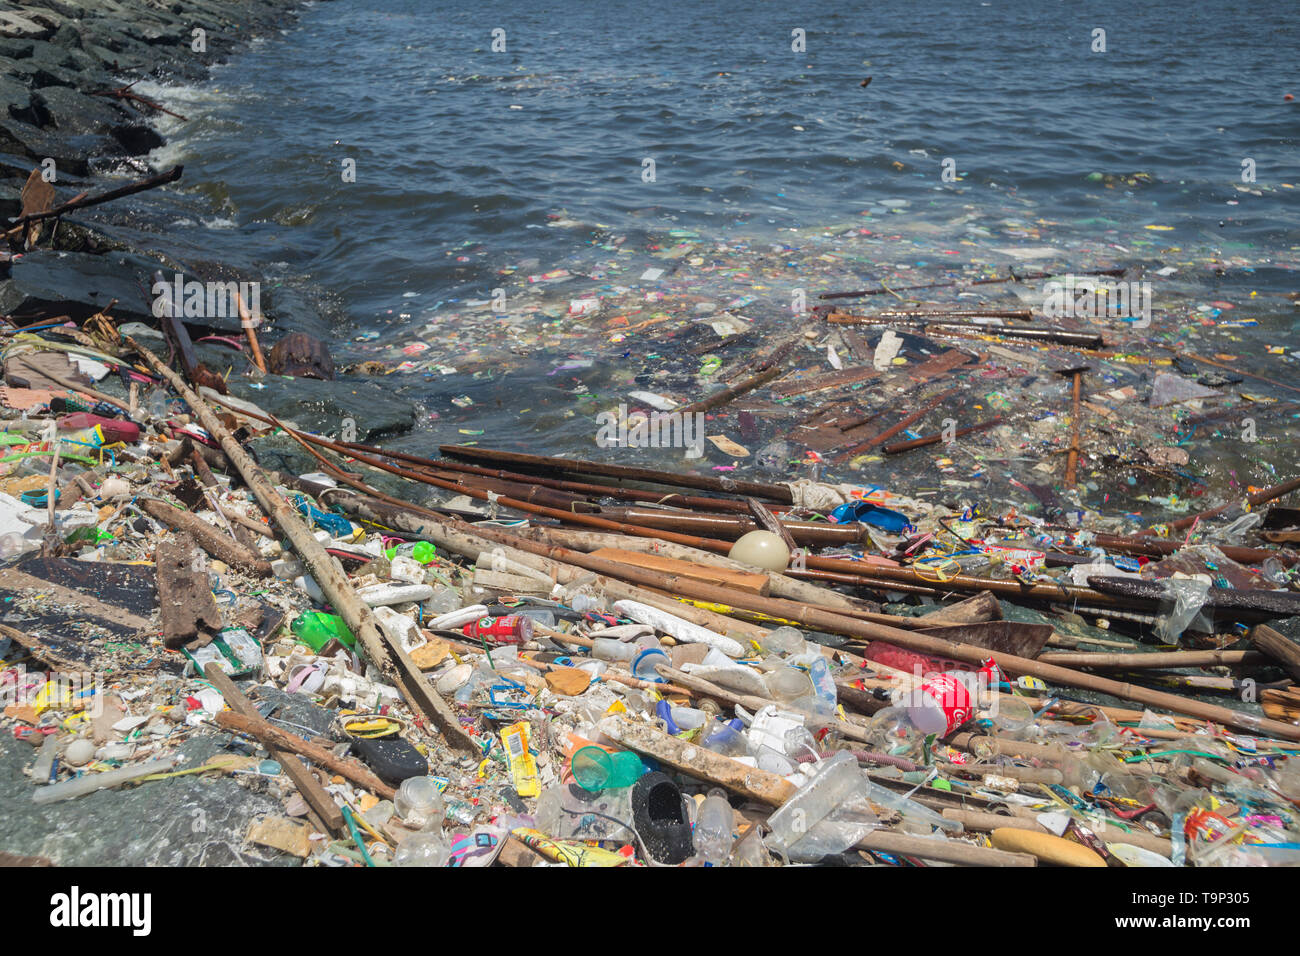 Manila, Philippines - May, 18, 2019: Ocean plastic pollution in Manila Bay shore - Stock Image